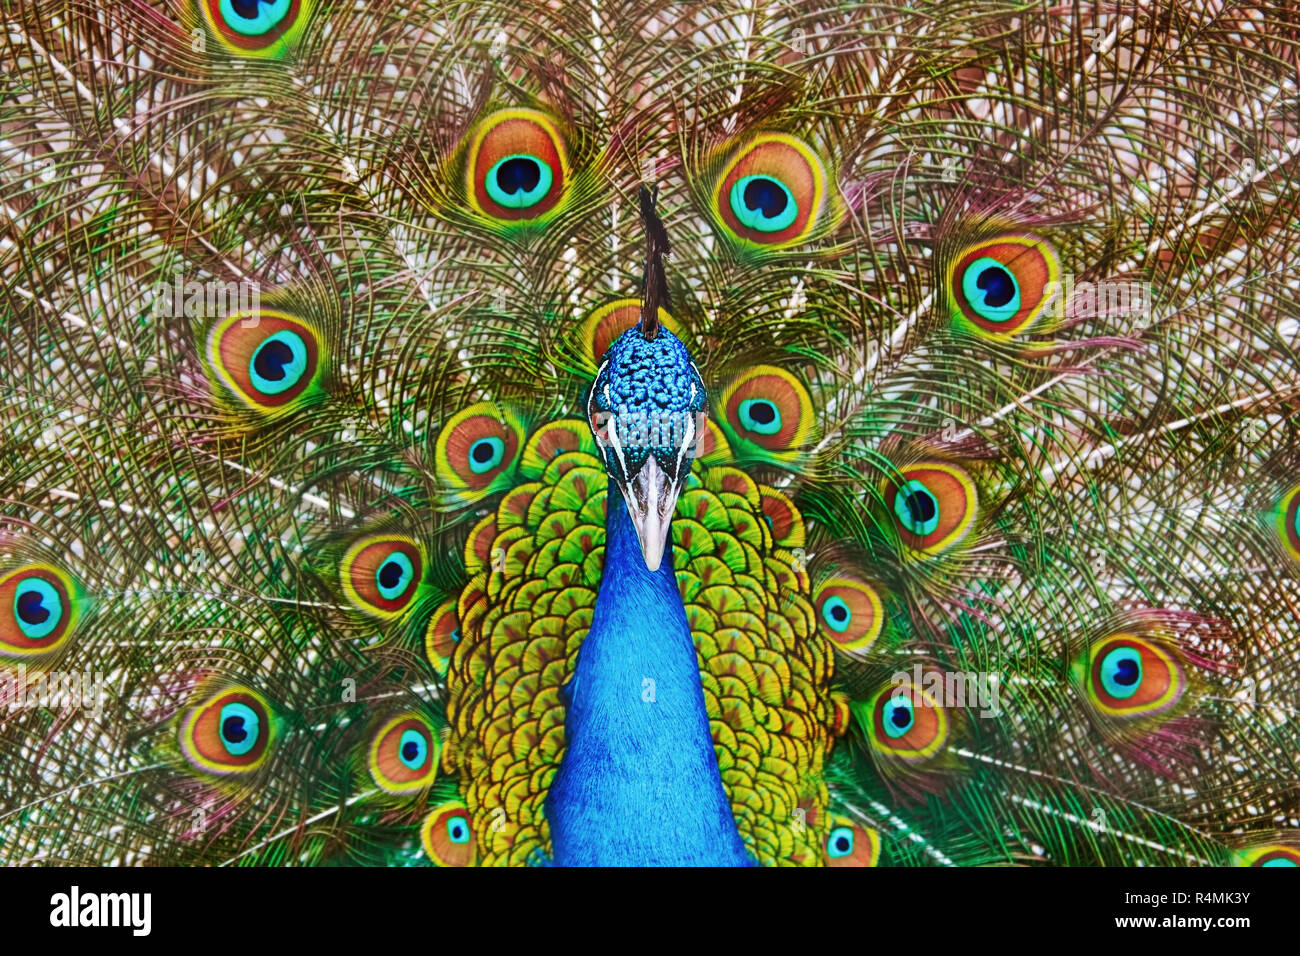 Portrait Of The Peacock - Stock Image